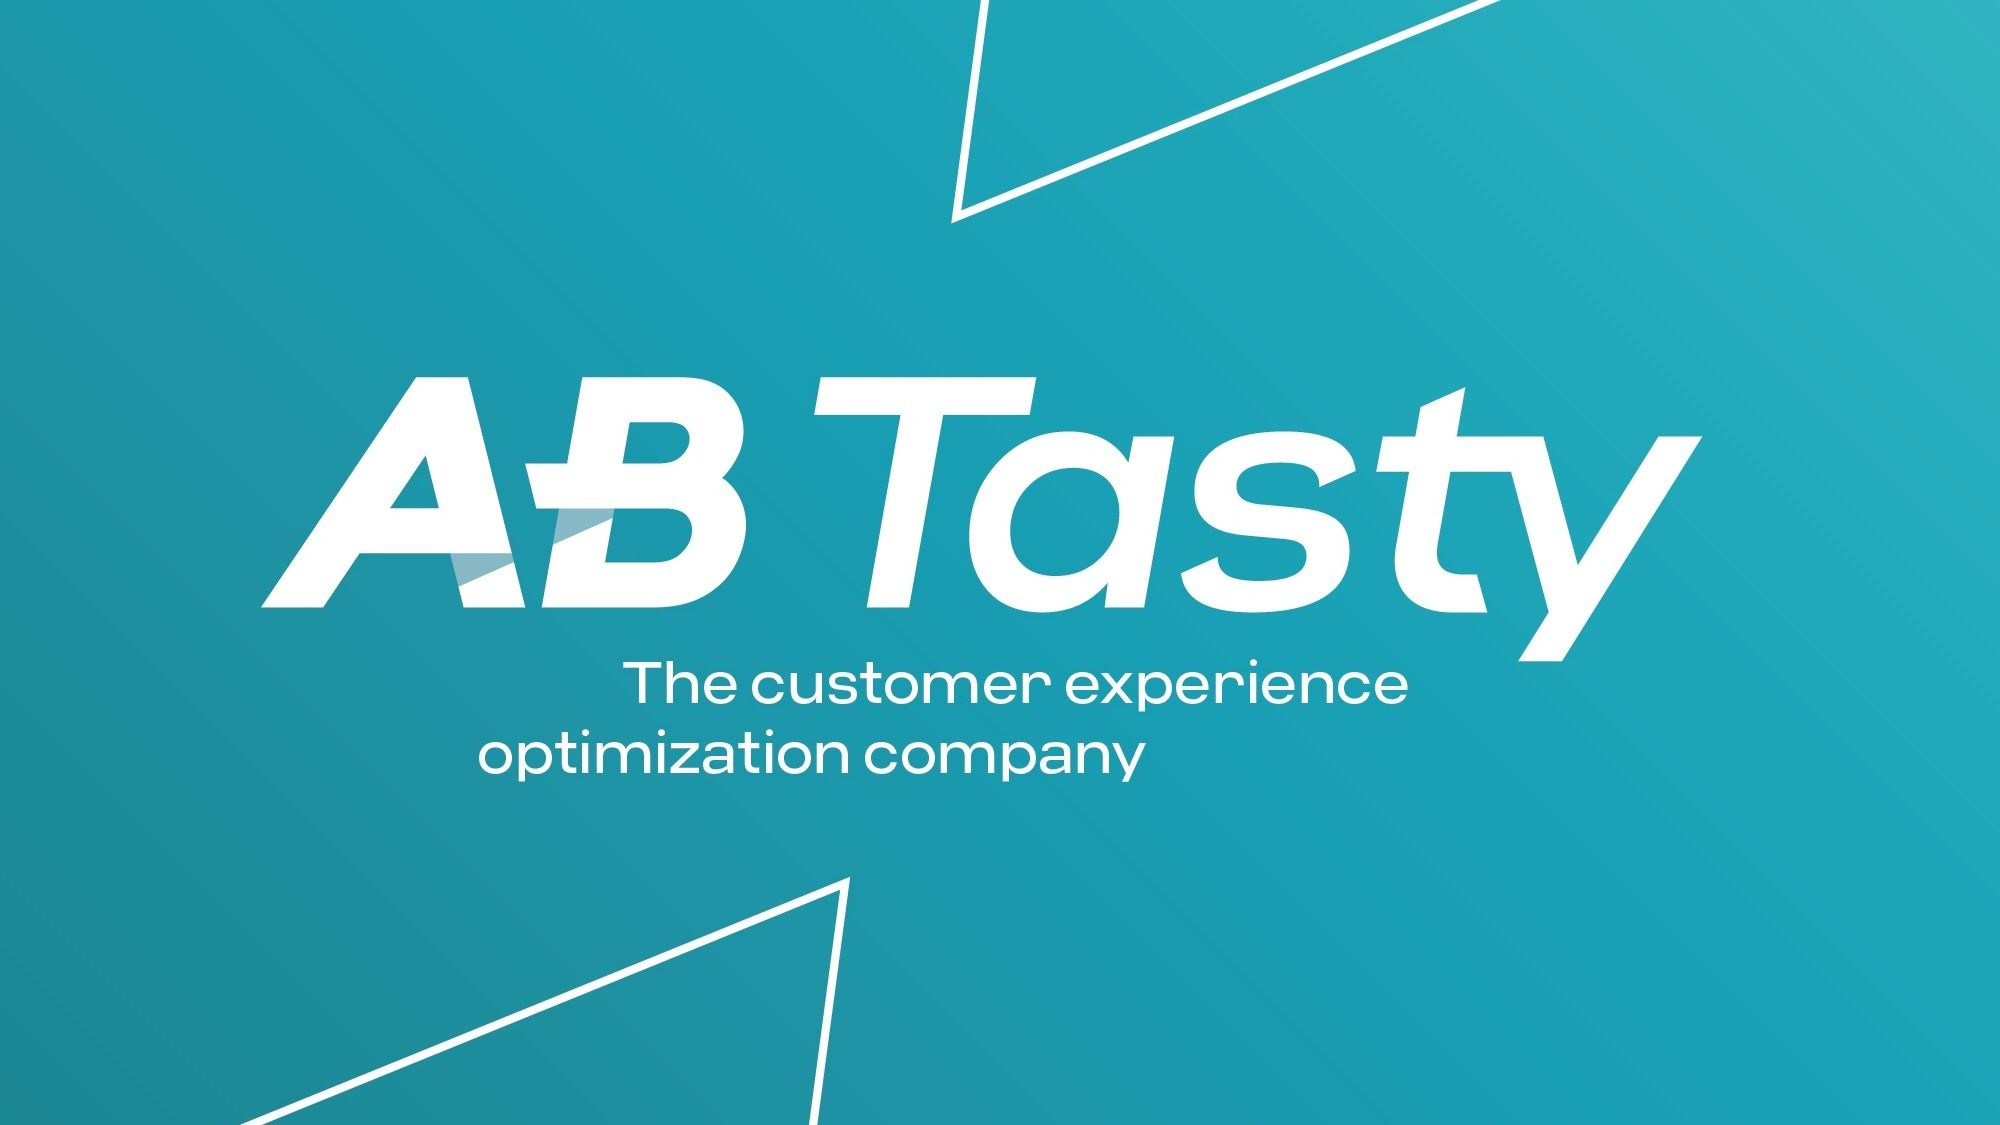 Customer Experience Optimisation Meetup by AB Tasty